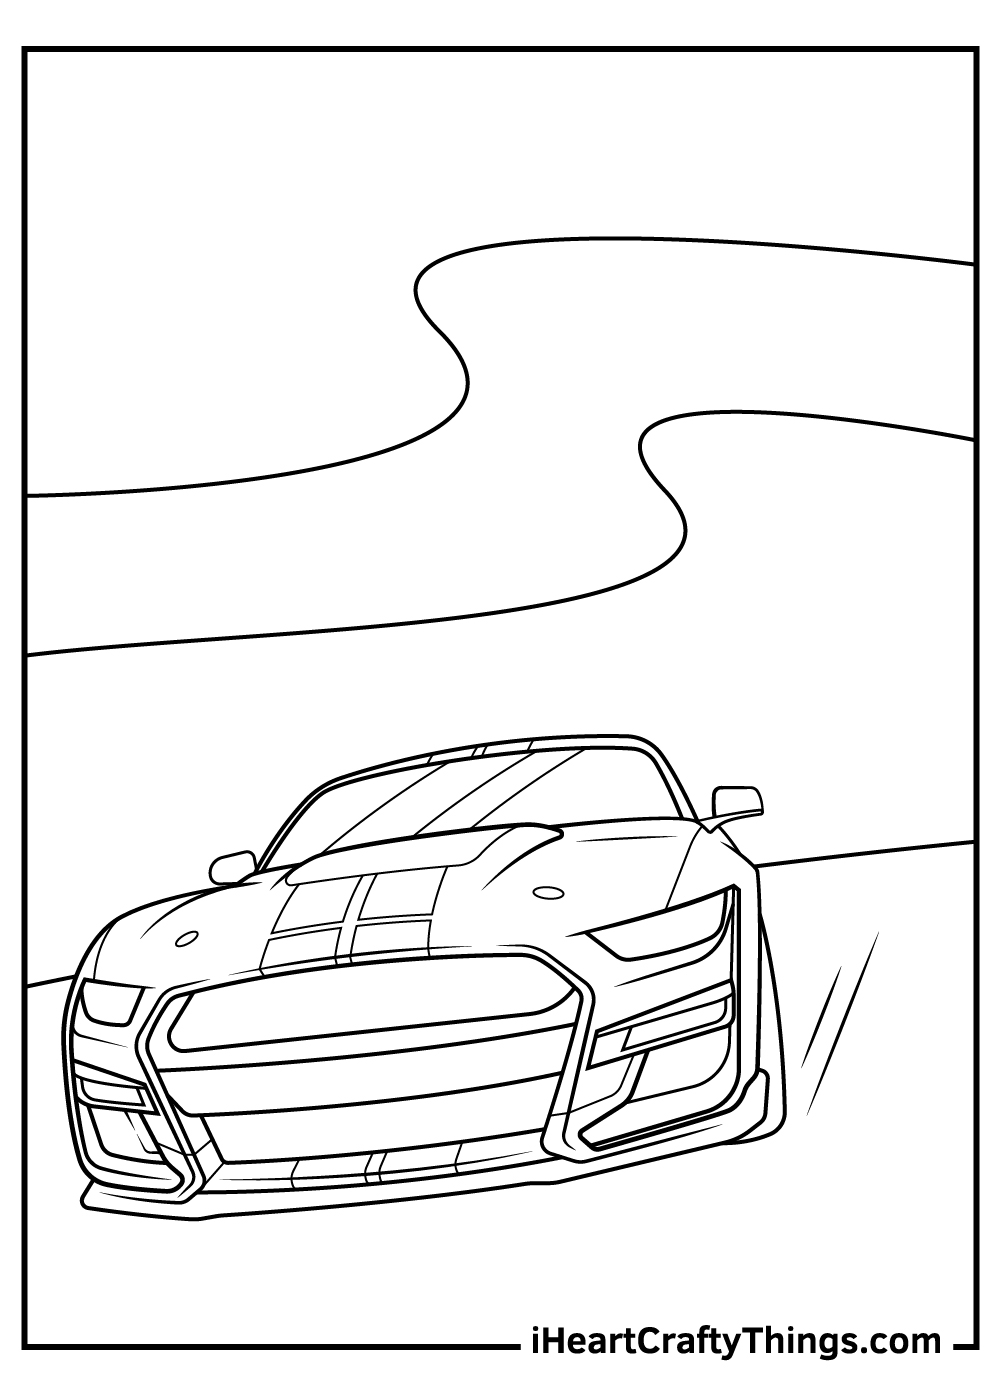 full page sports car coloring pages free download